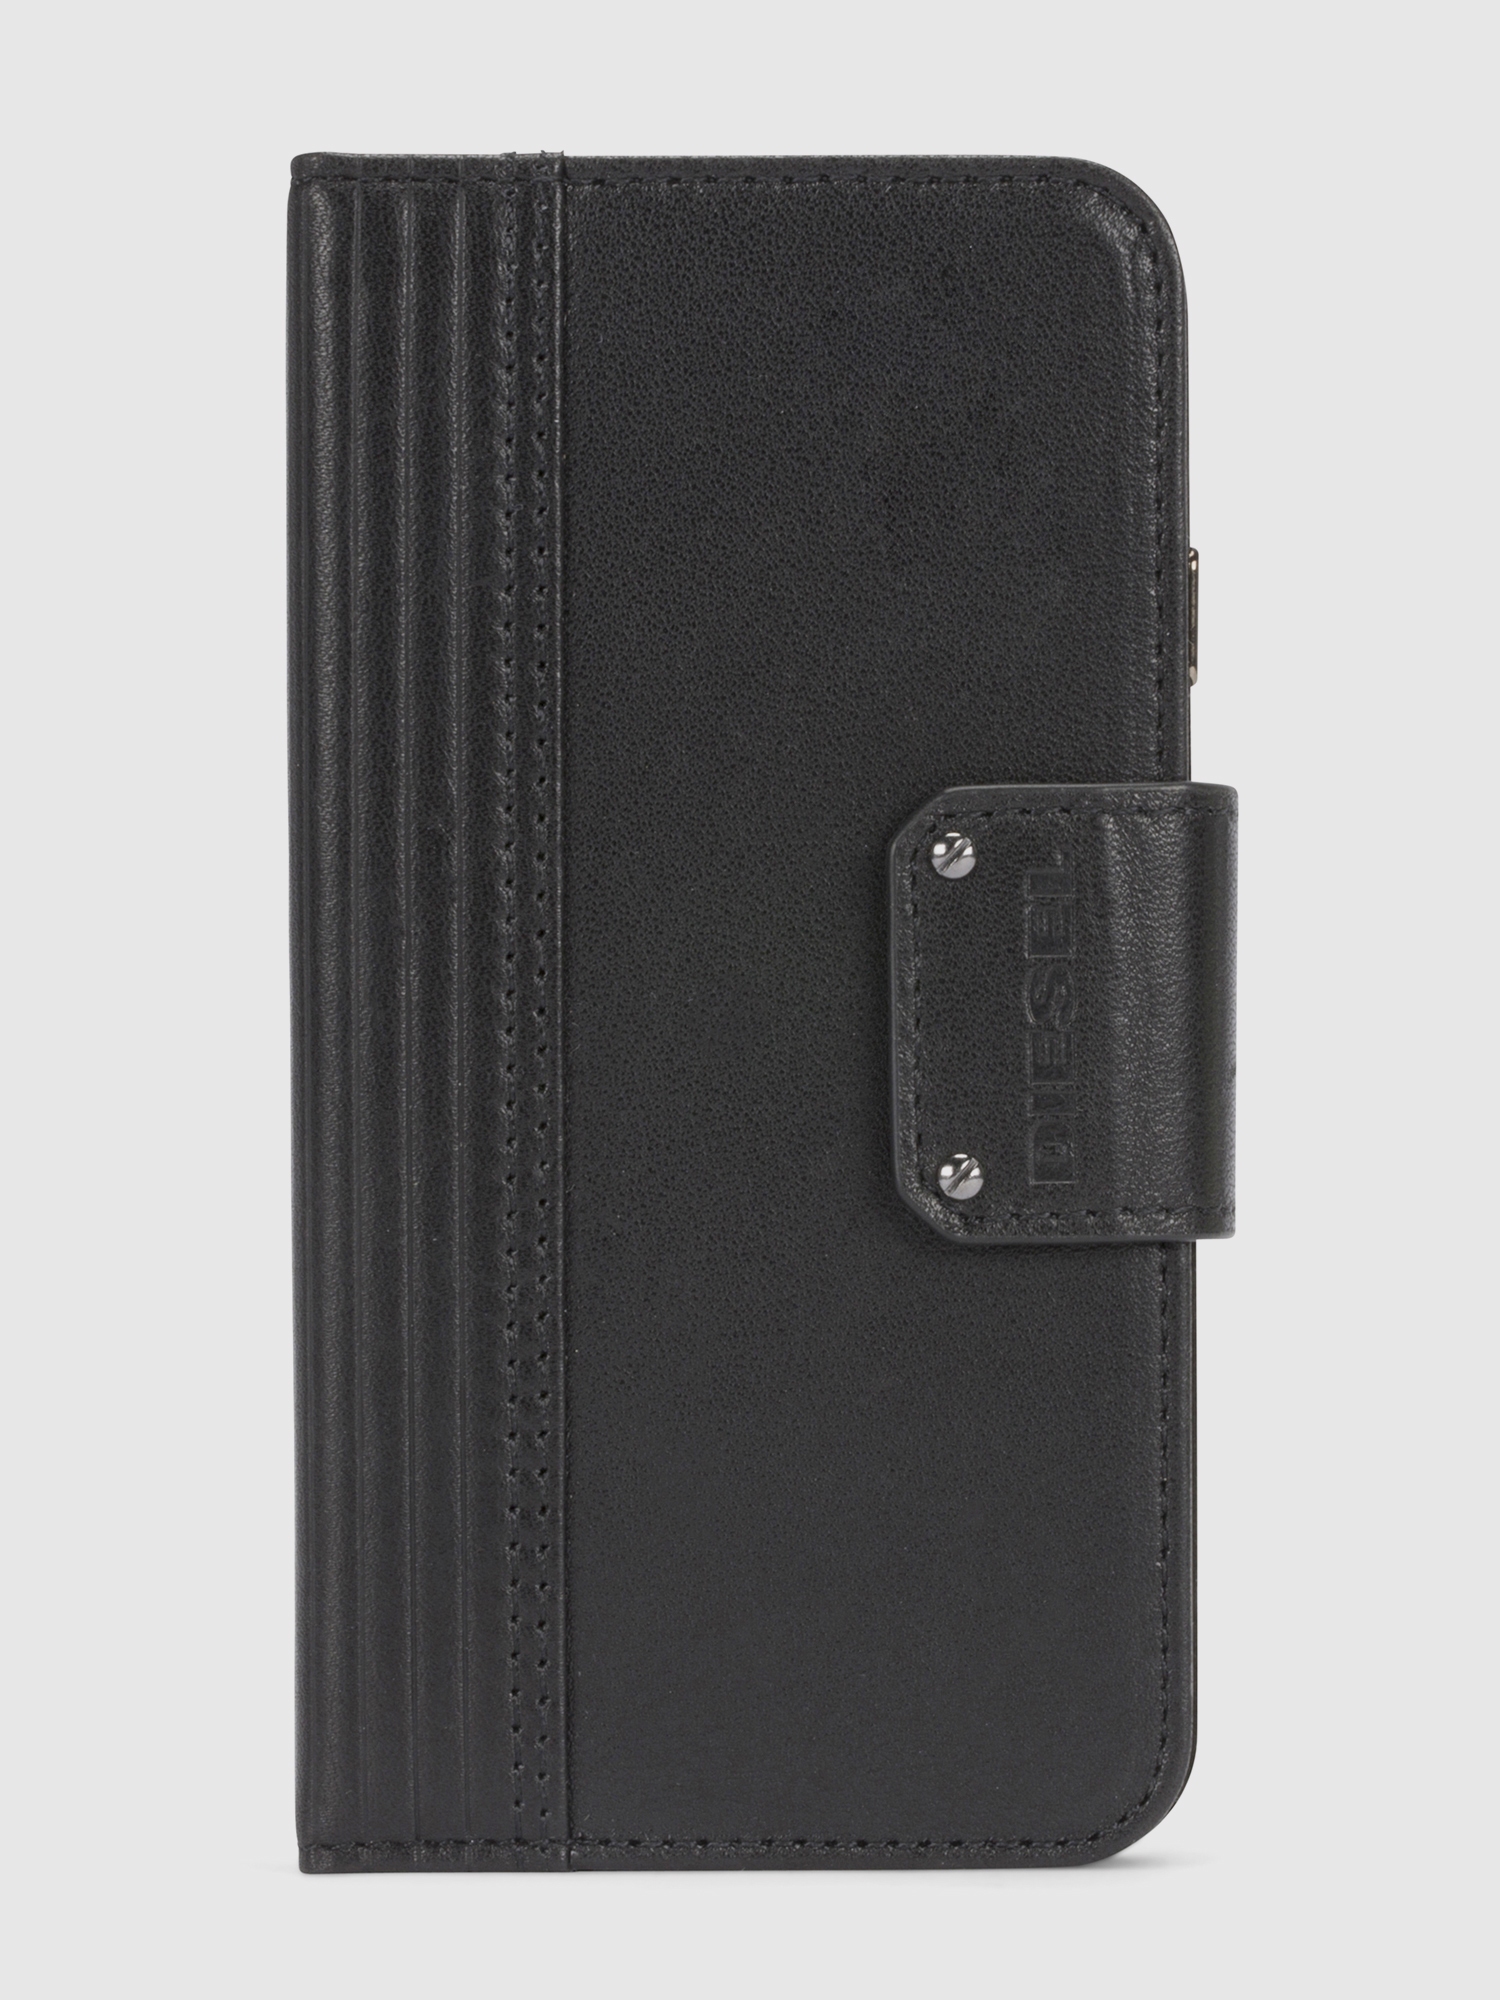 Diesel - BLACK LINED LEATHER IPHONE 8/7 FOLIO,  - Coques à rabat - Image 3